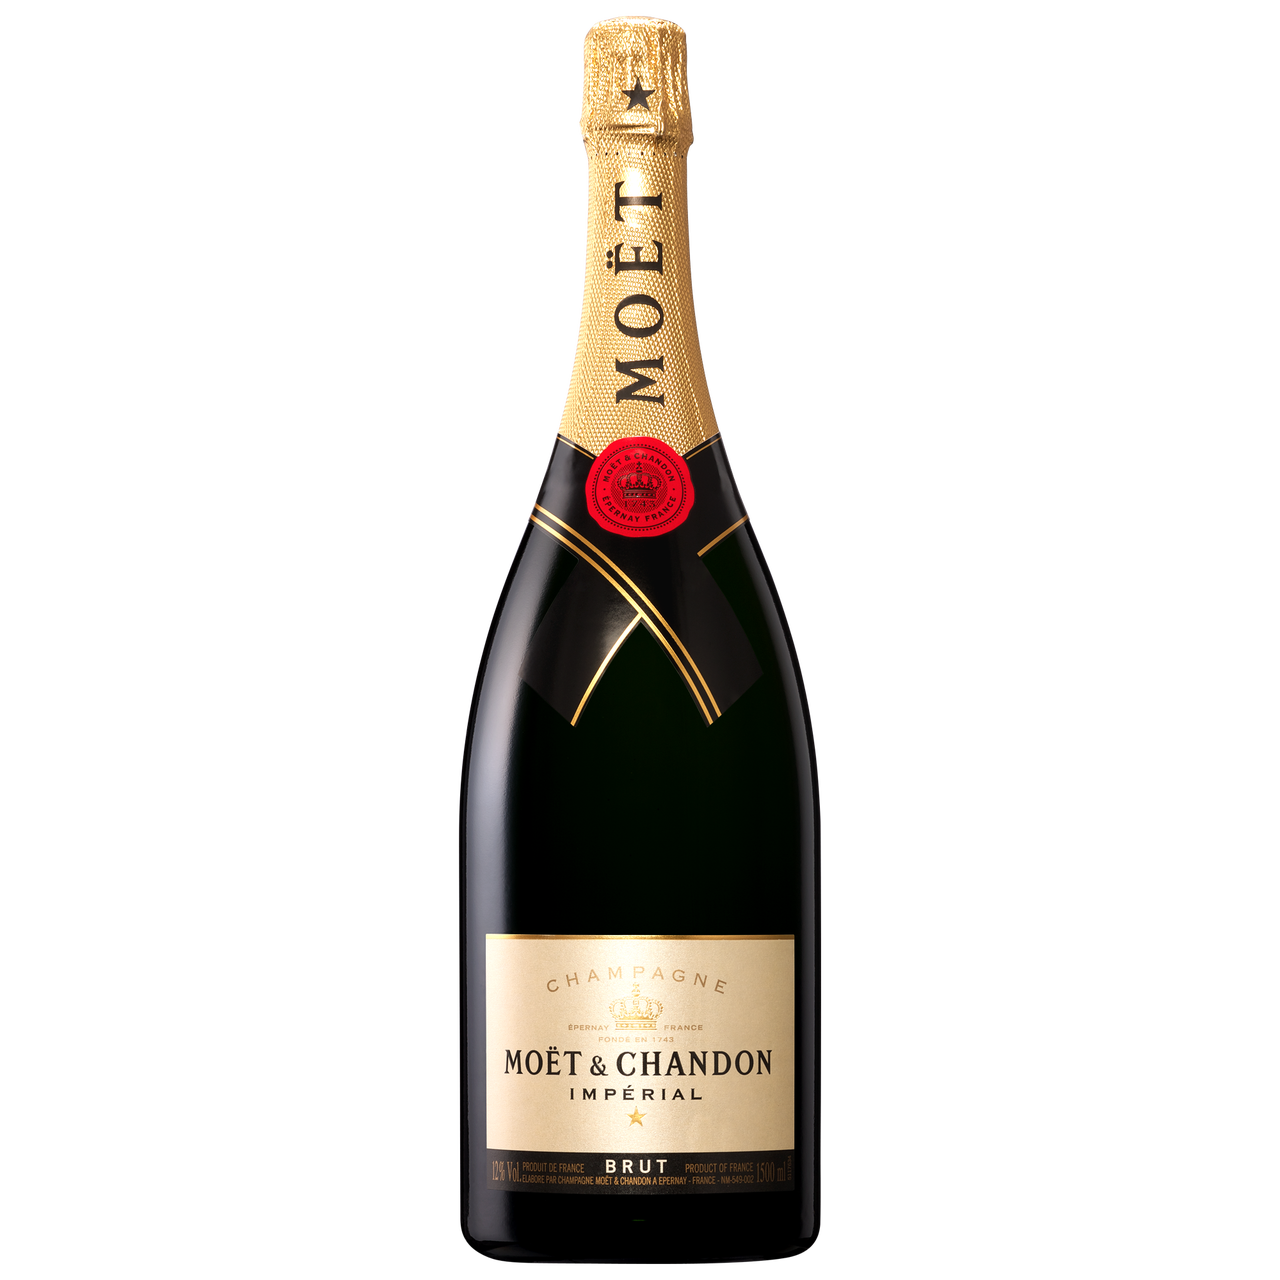 Moët & Chandon Brut Imperial Methusalem 6l